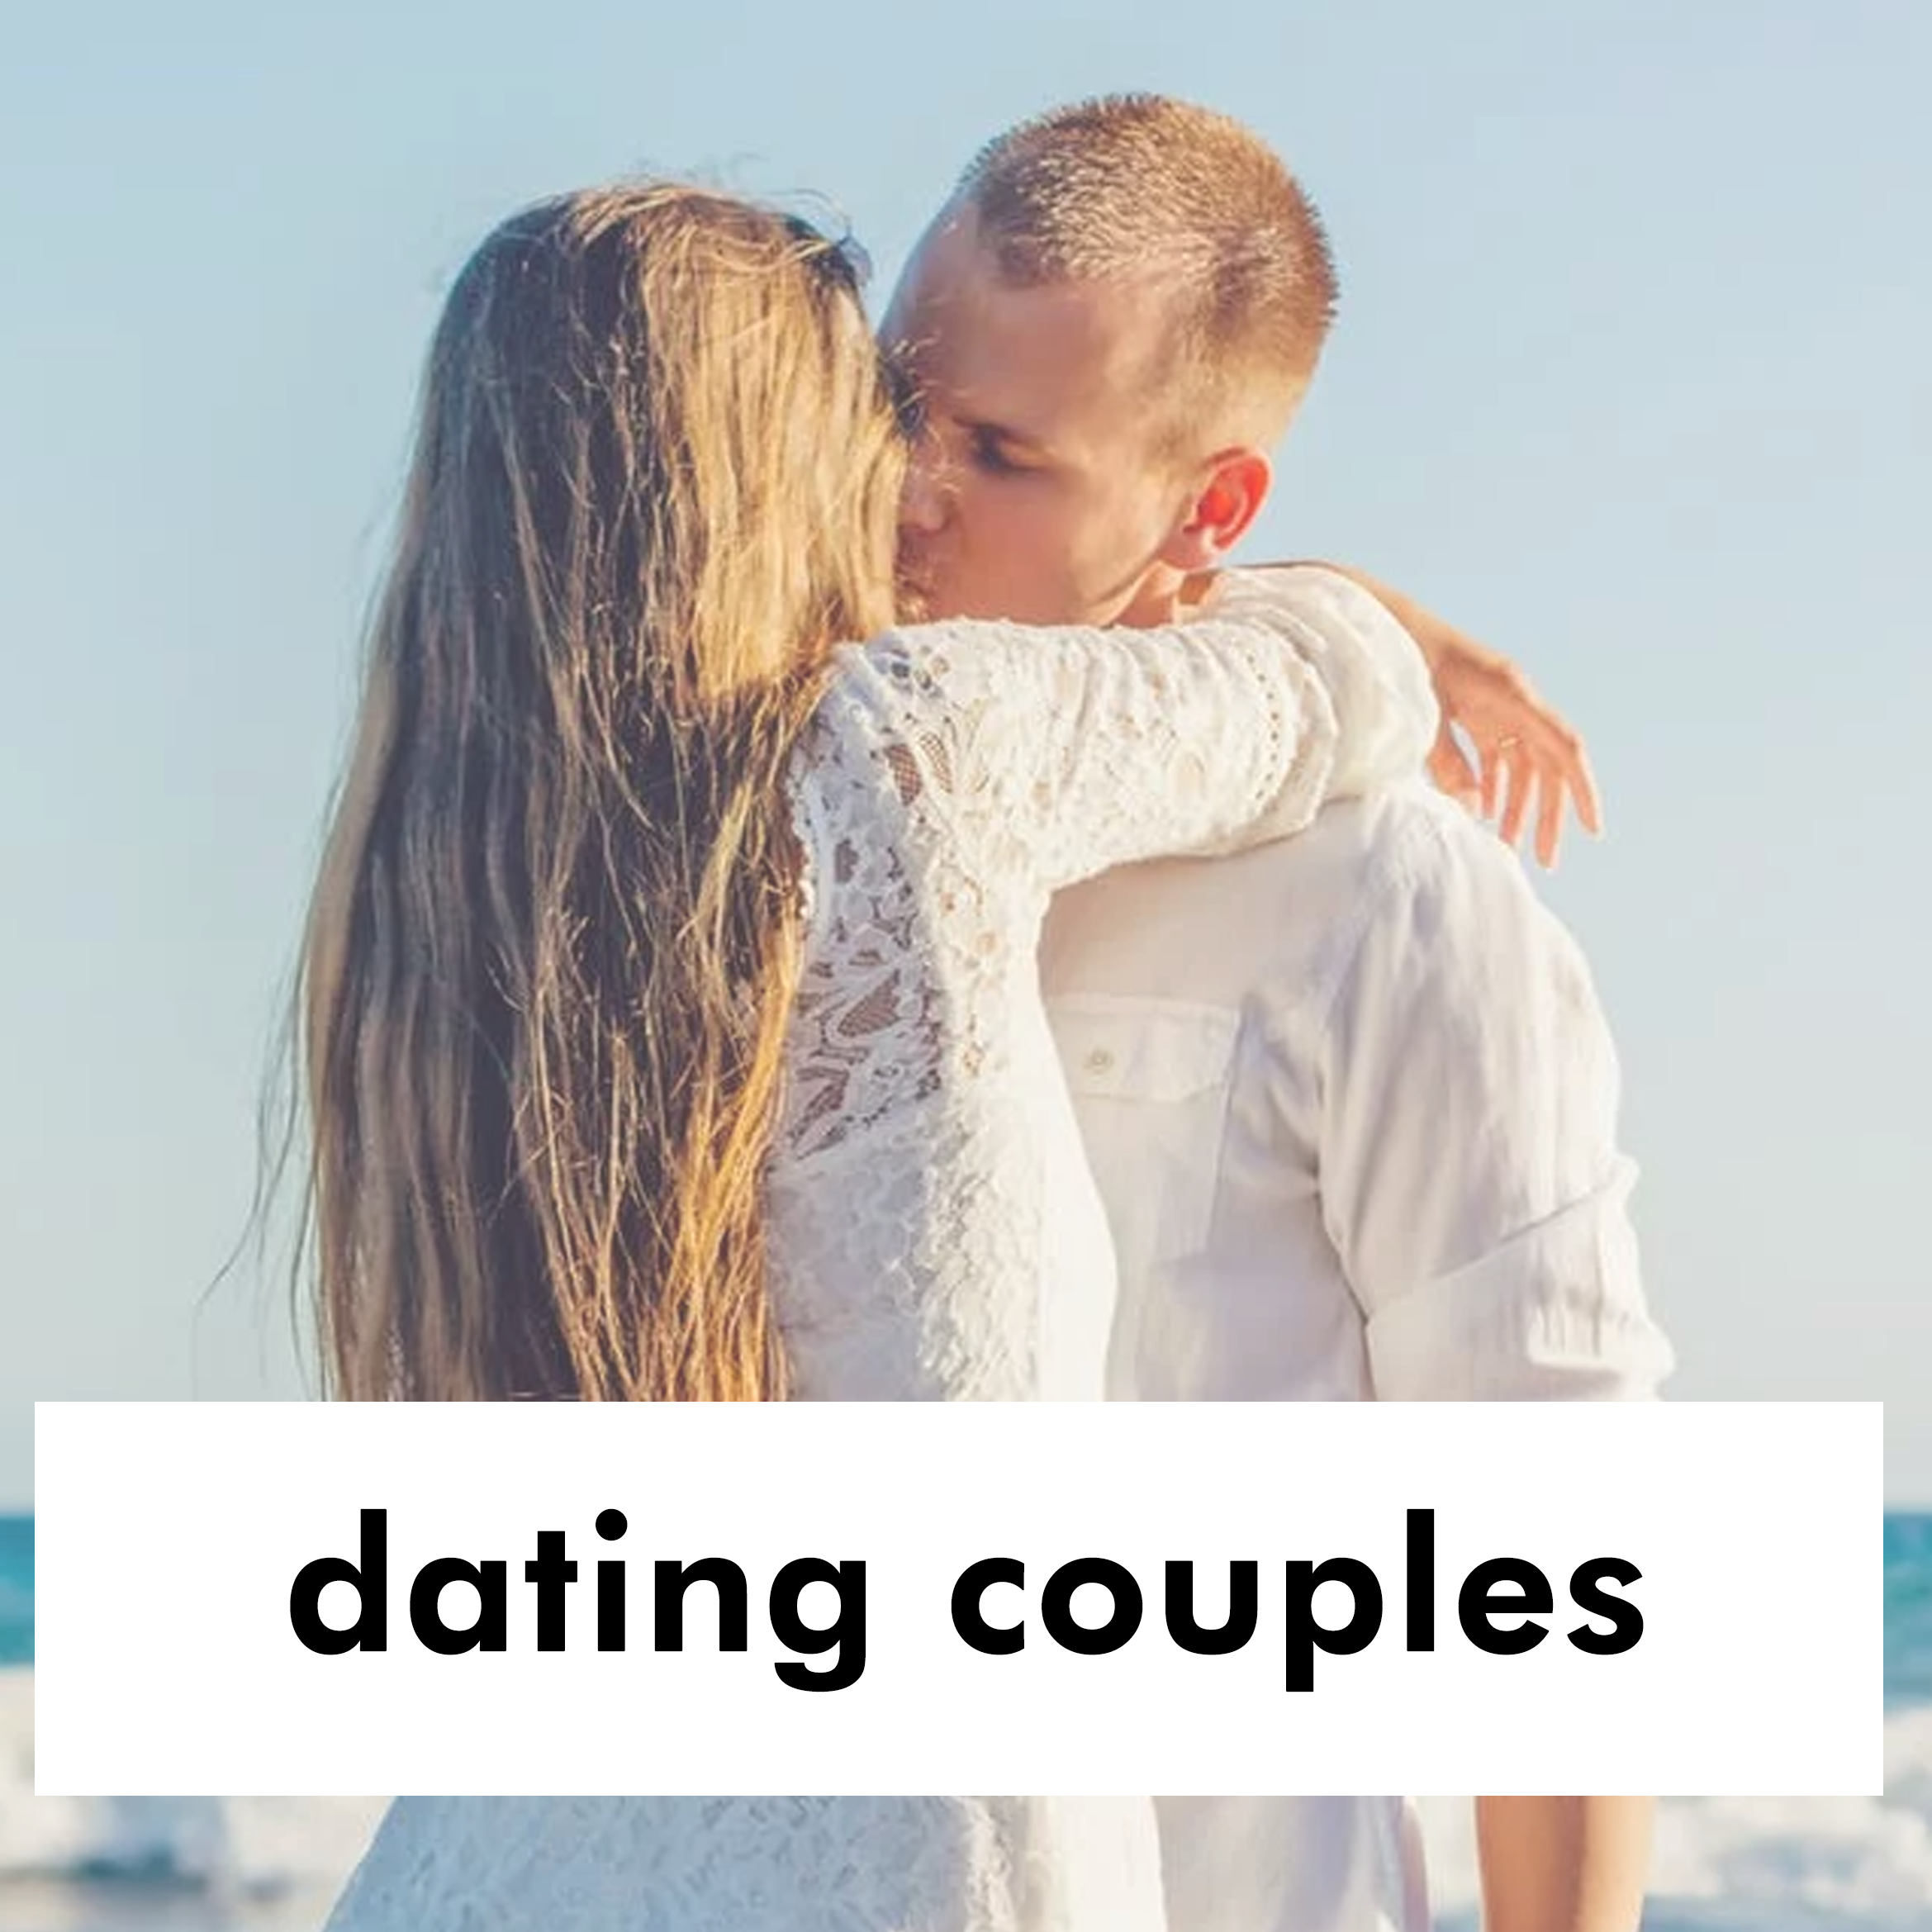 CouplesDating